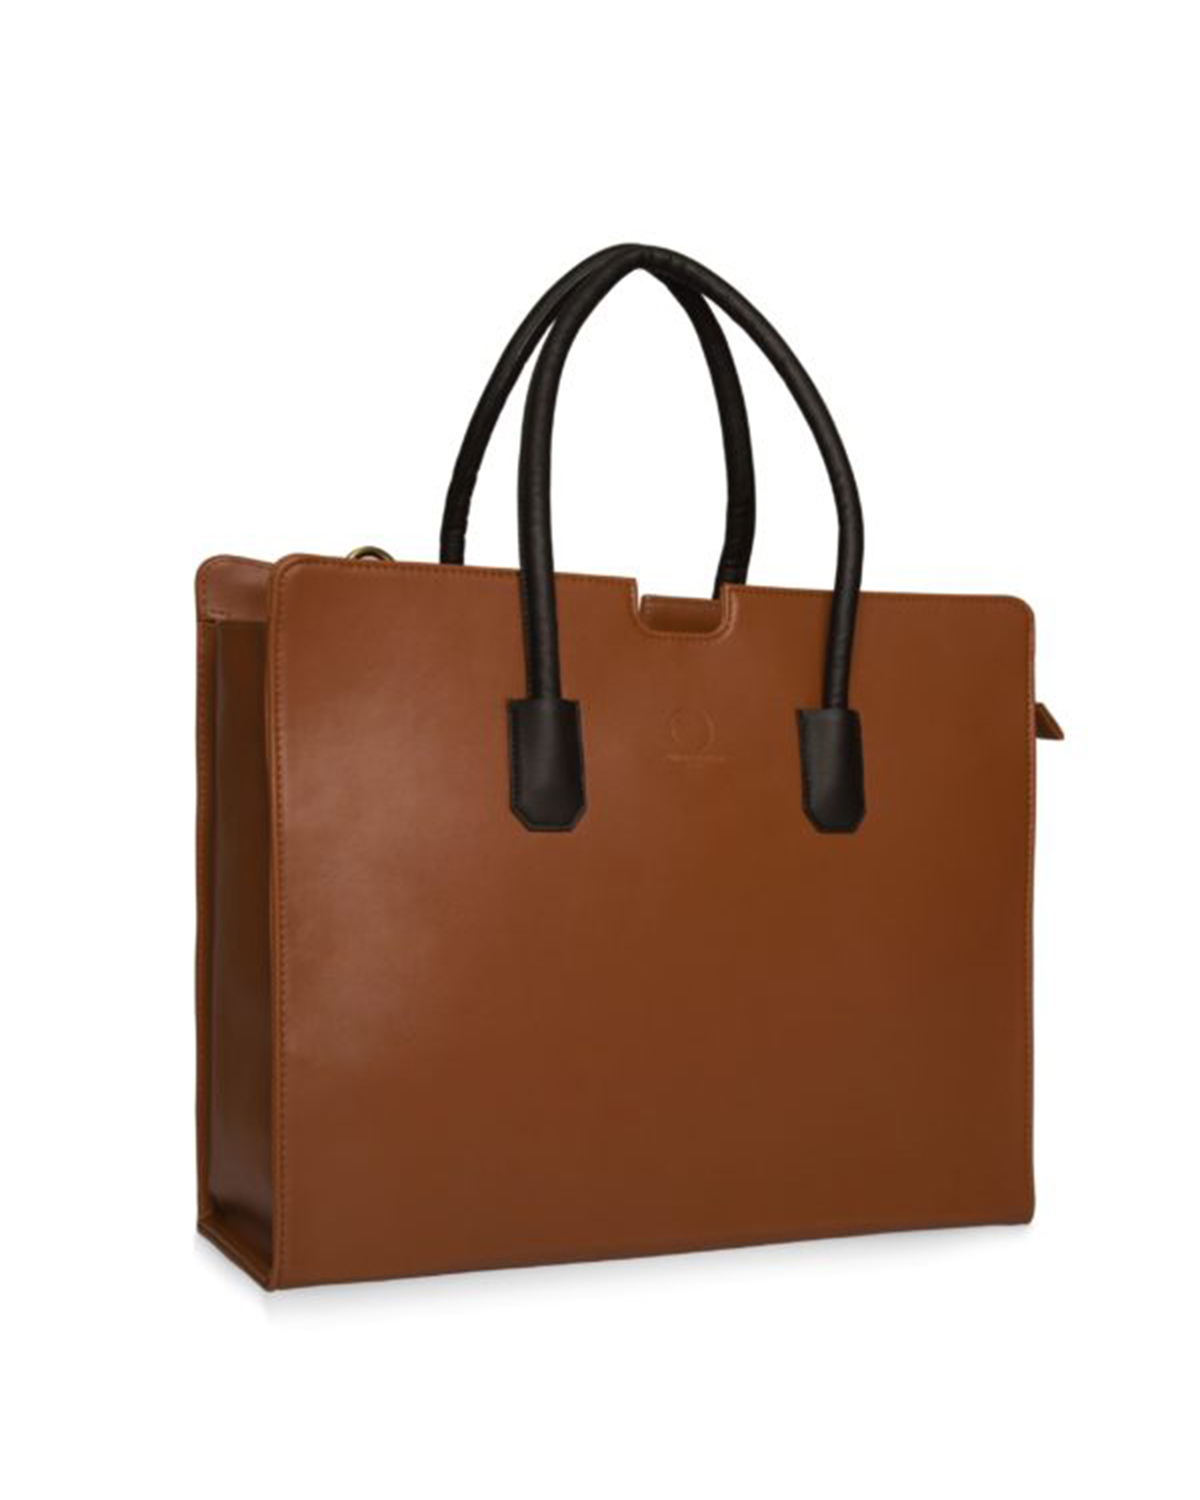 Qua Tan Laptop Bag from Funky Kalakar